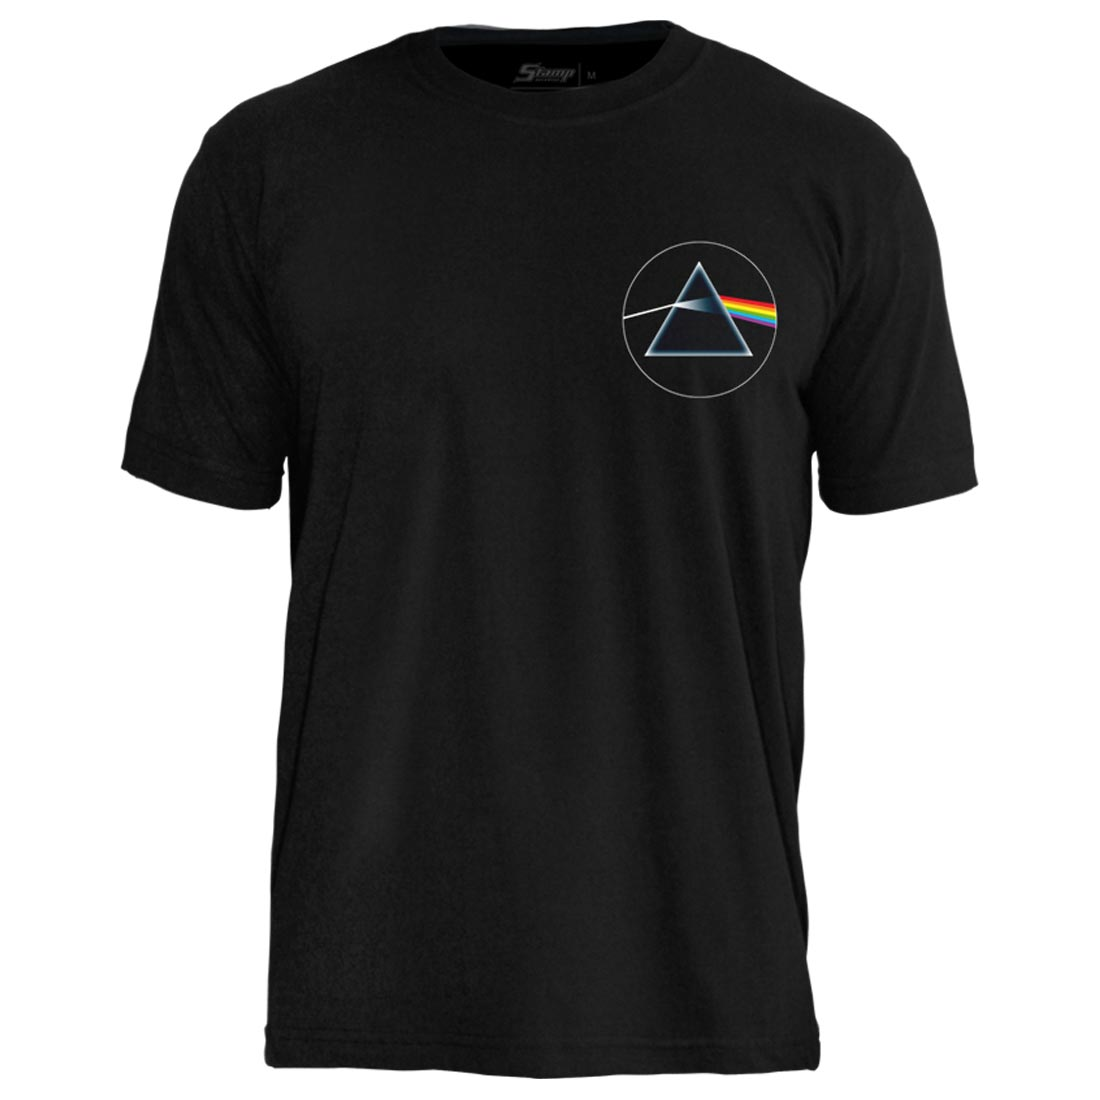 Camiseta PC Pink Floyd Dark Side Prism